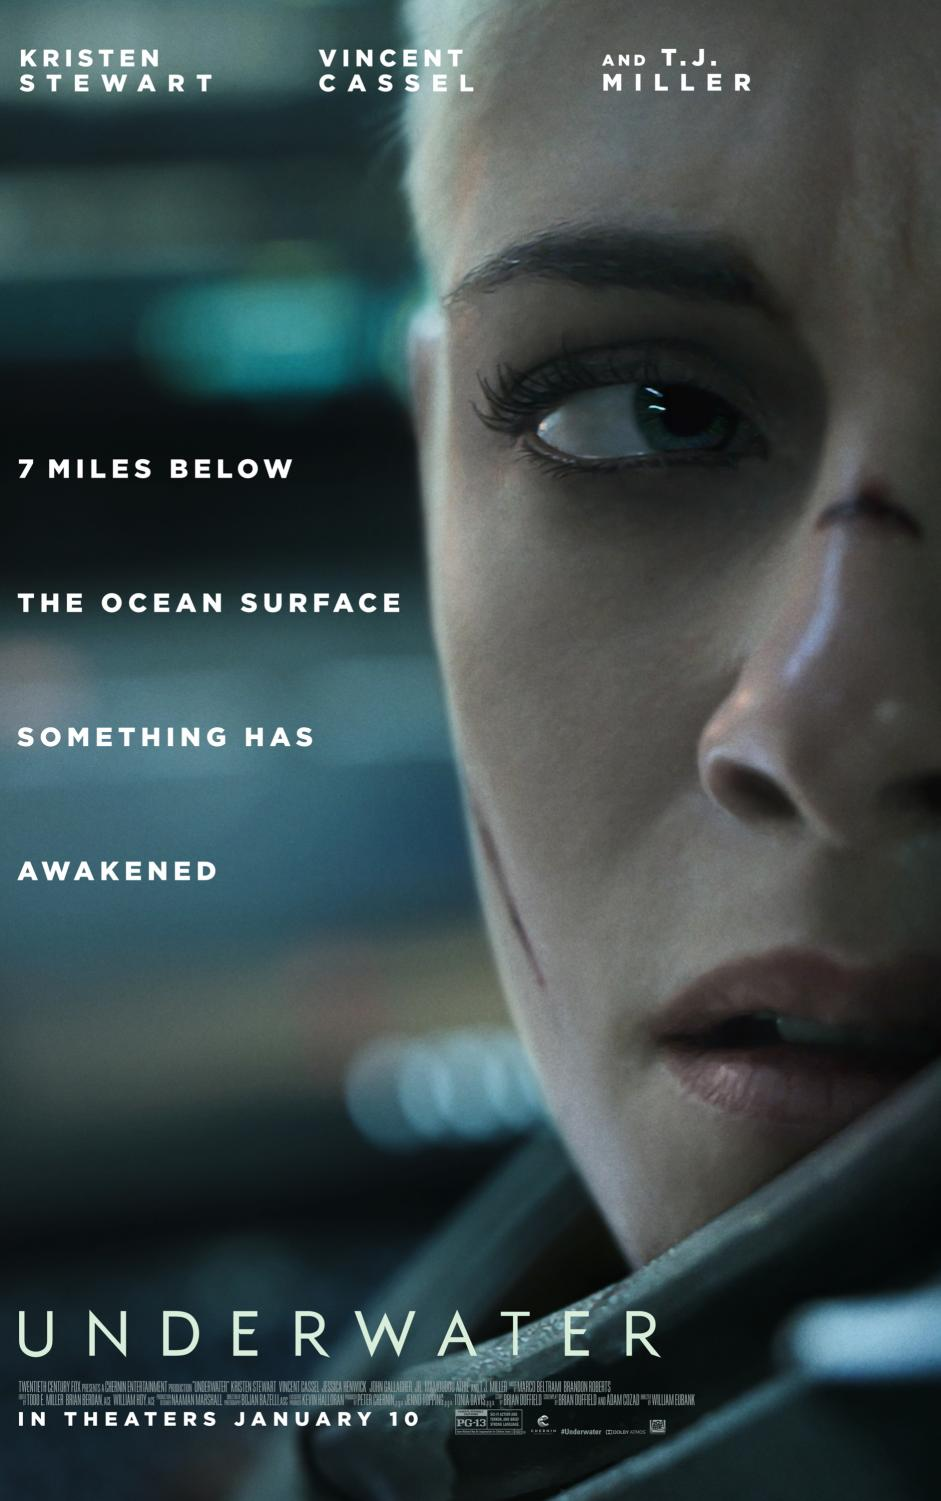 Underwater is a scary movie. It was released on Jan. 10, 2020.